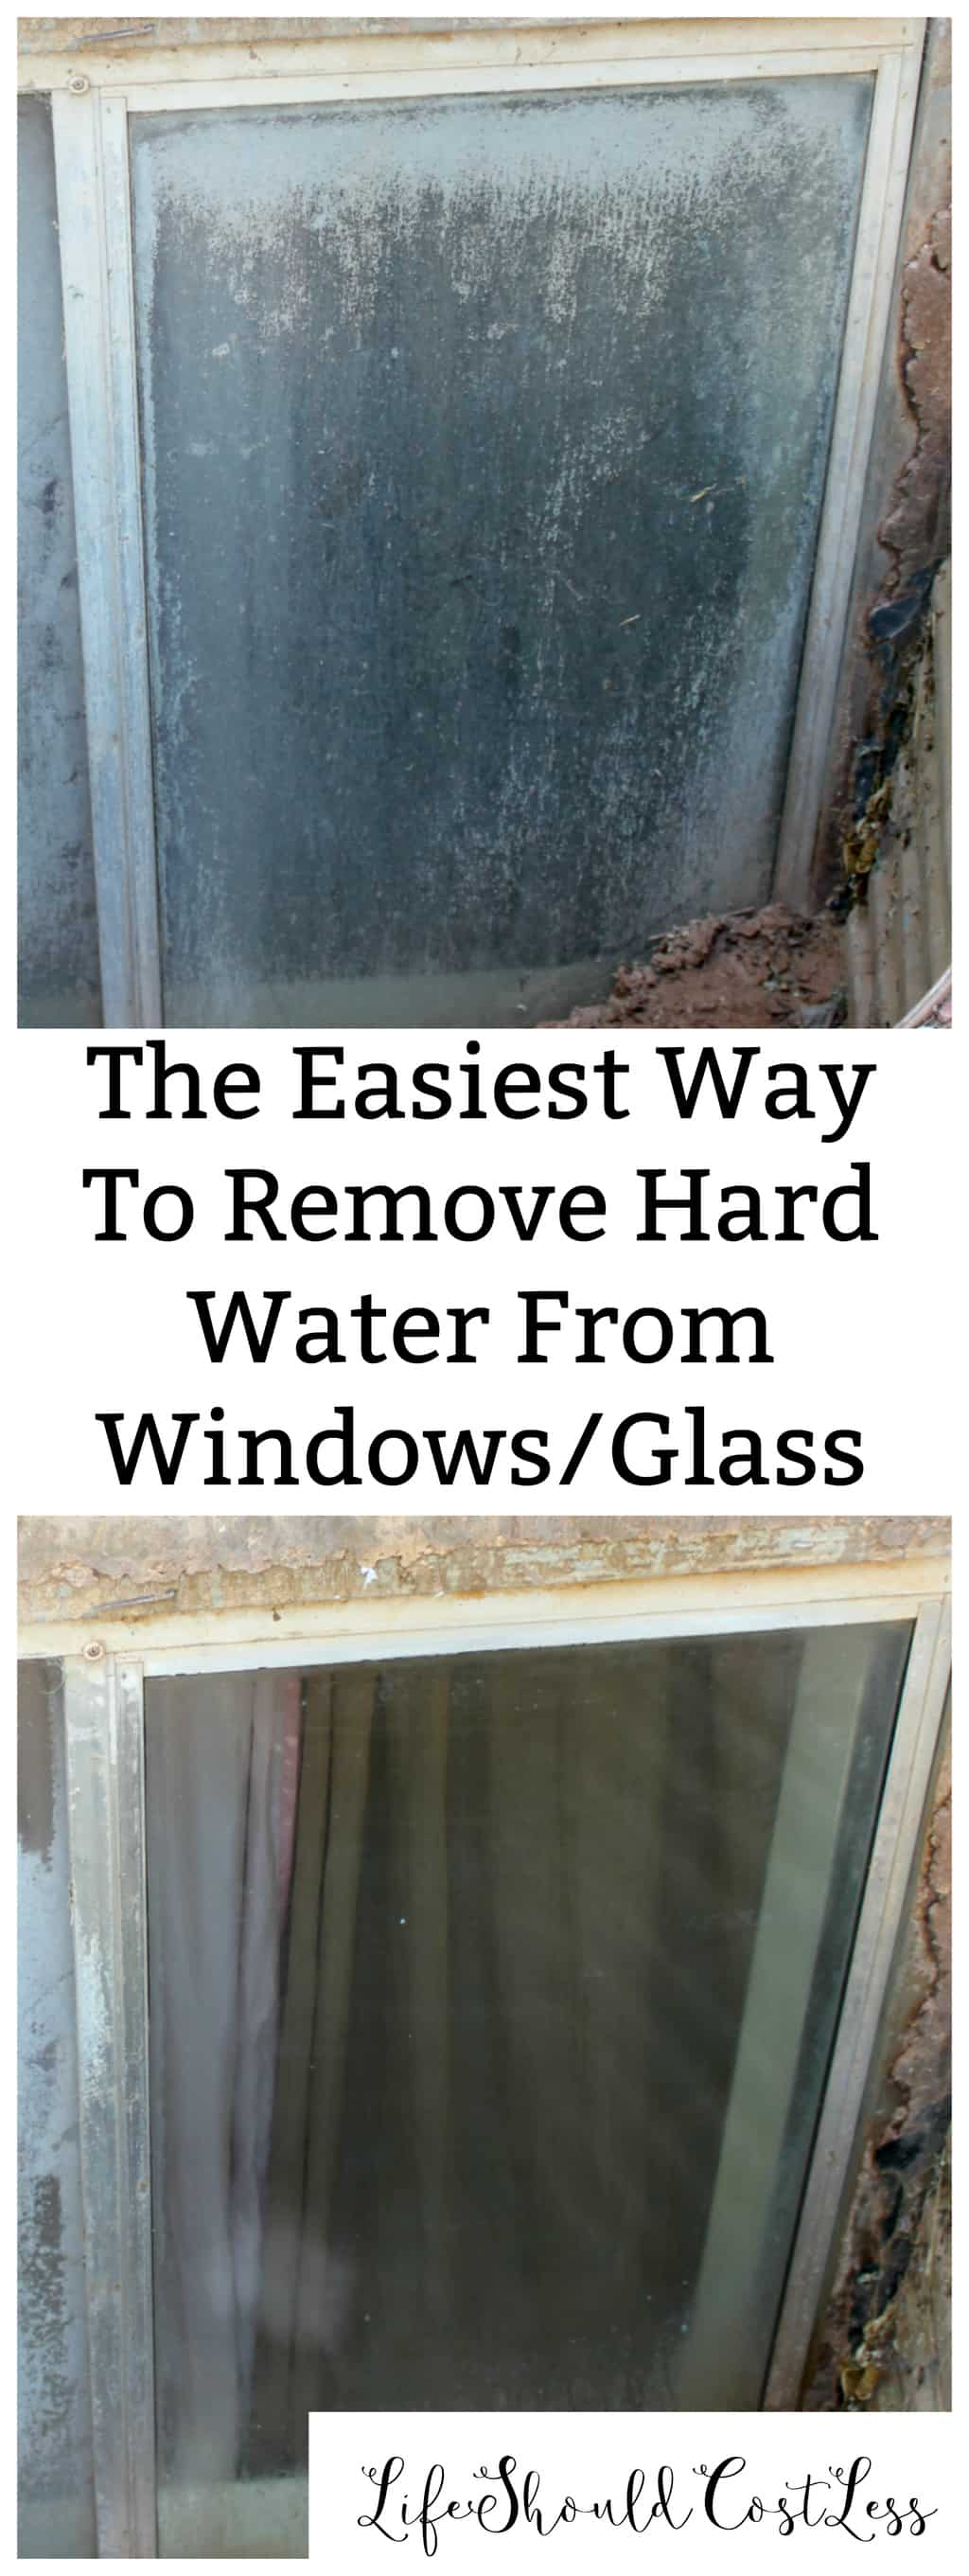 The Easiest Way To Remove Hard Water From Windows/Glass. {lifeshouldcostless.com}